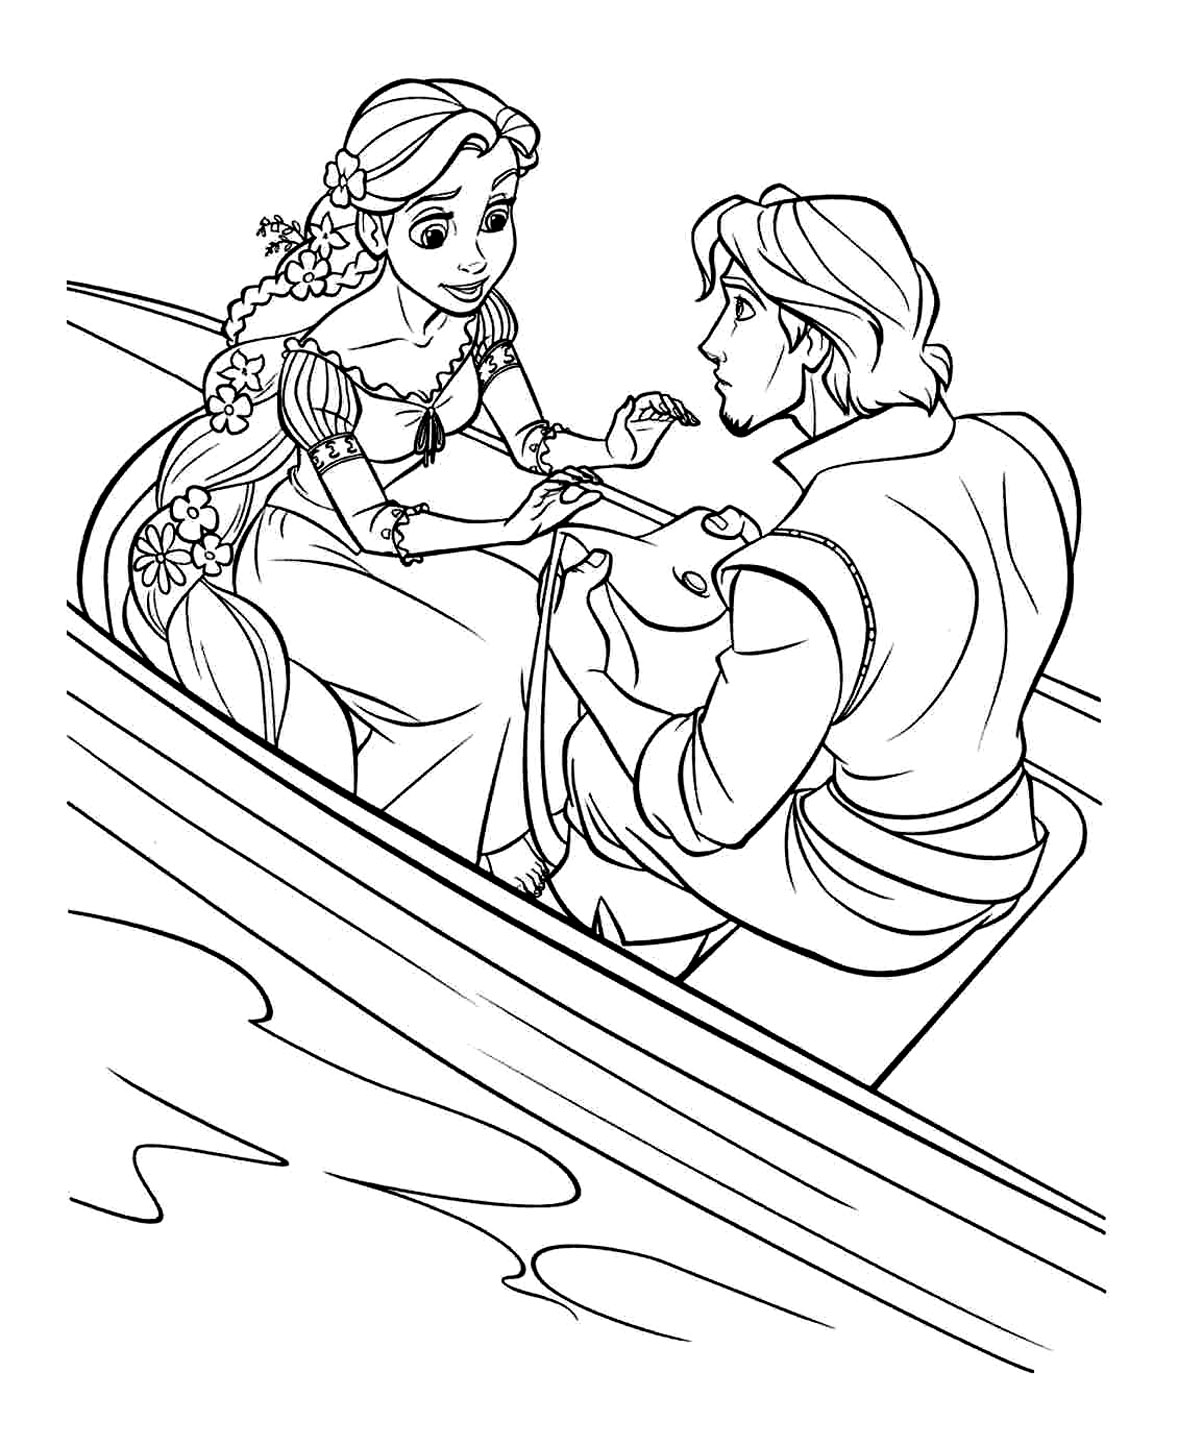 Flynn gives his bag to Rapunzel Coloring Page